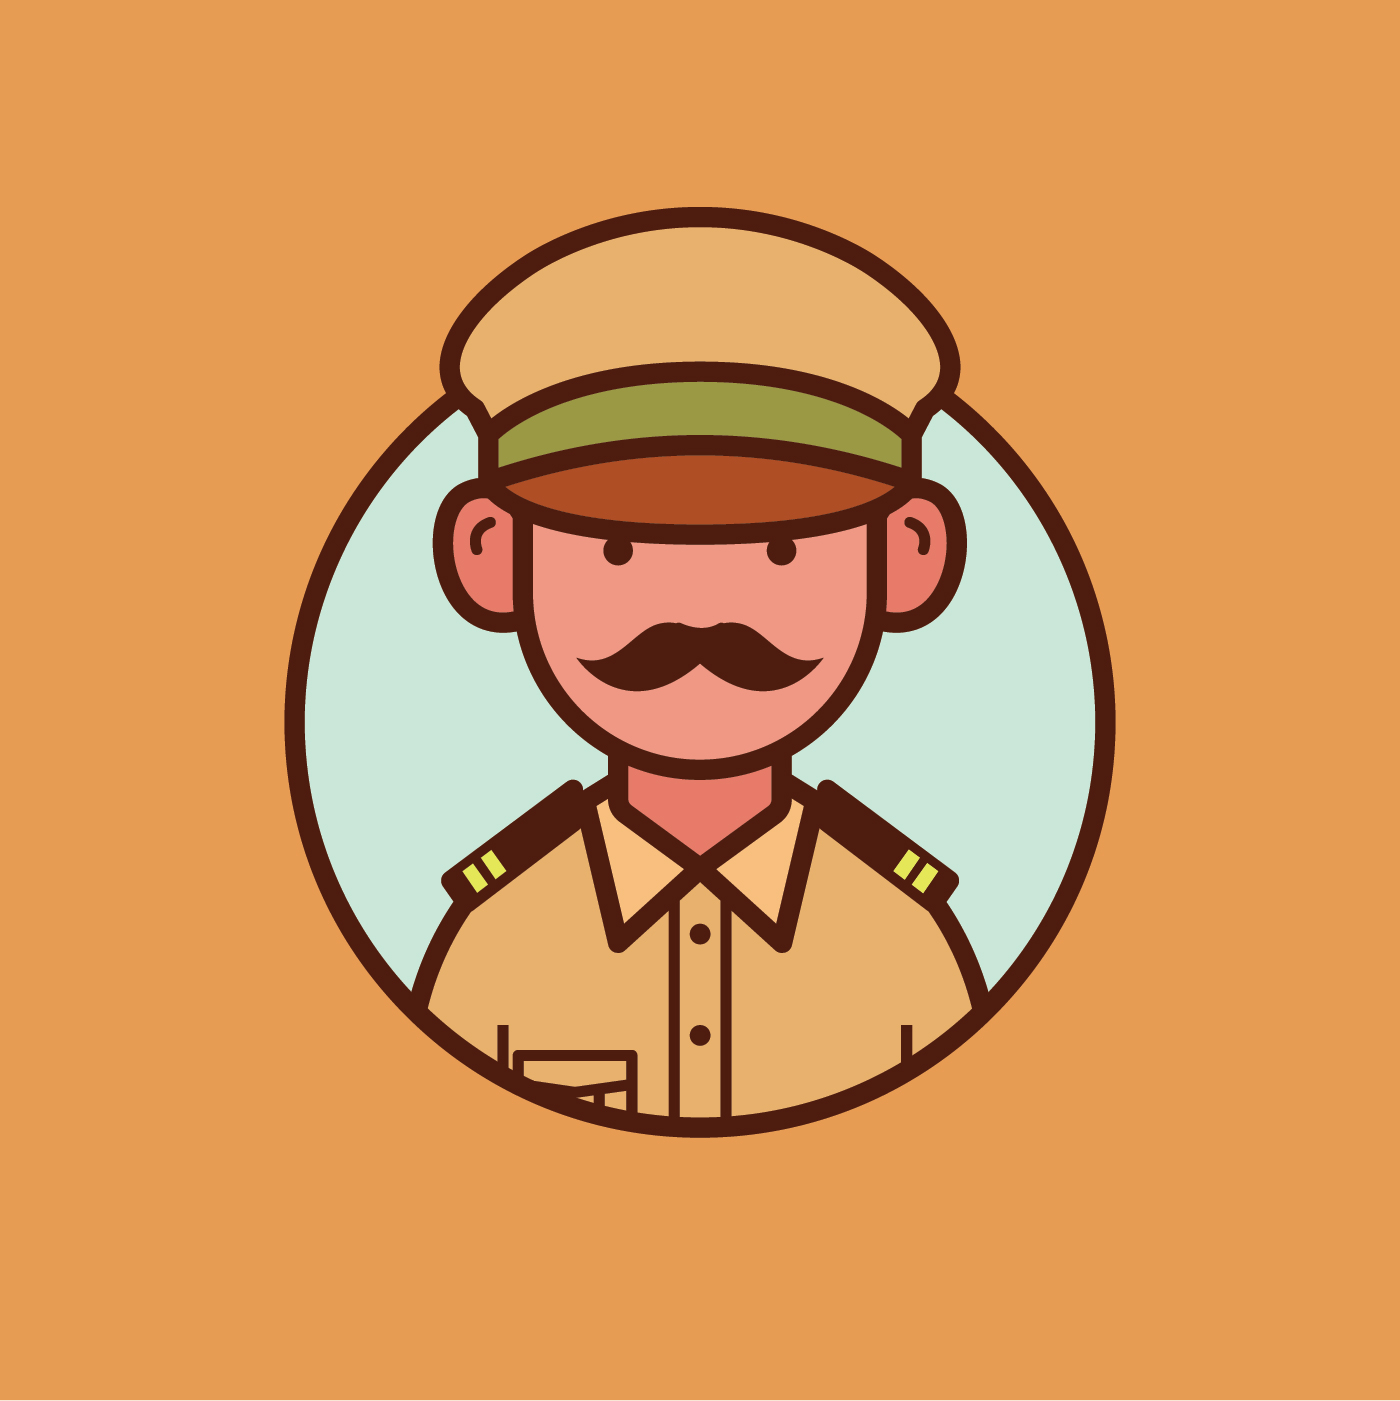 indian police officer download free vectors clipart graphics vector art indian police officer download free